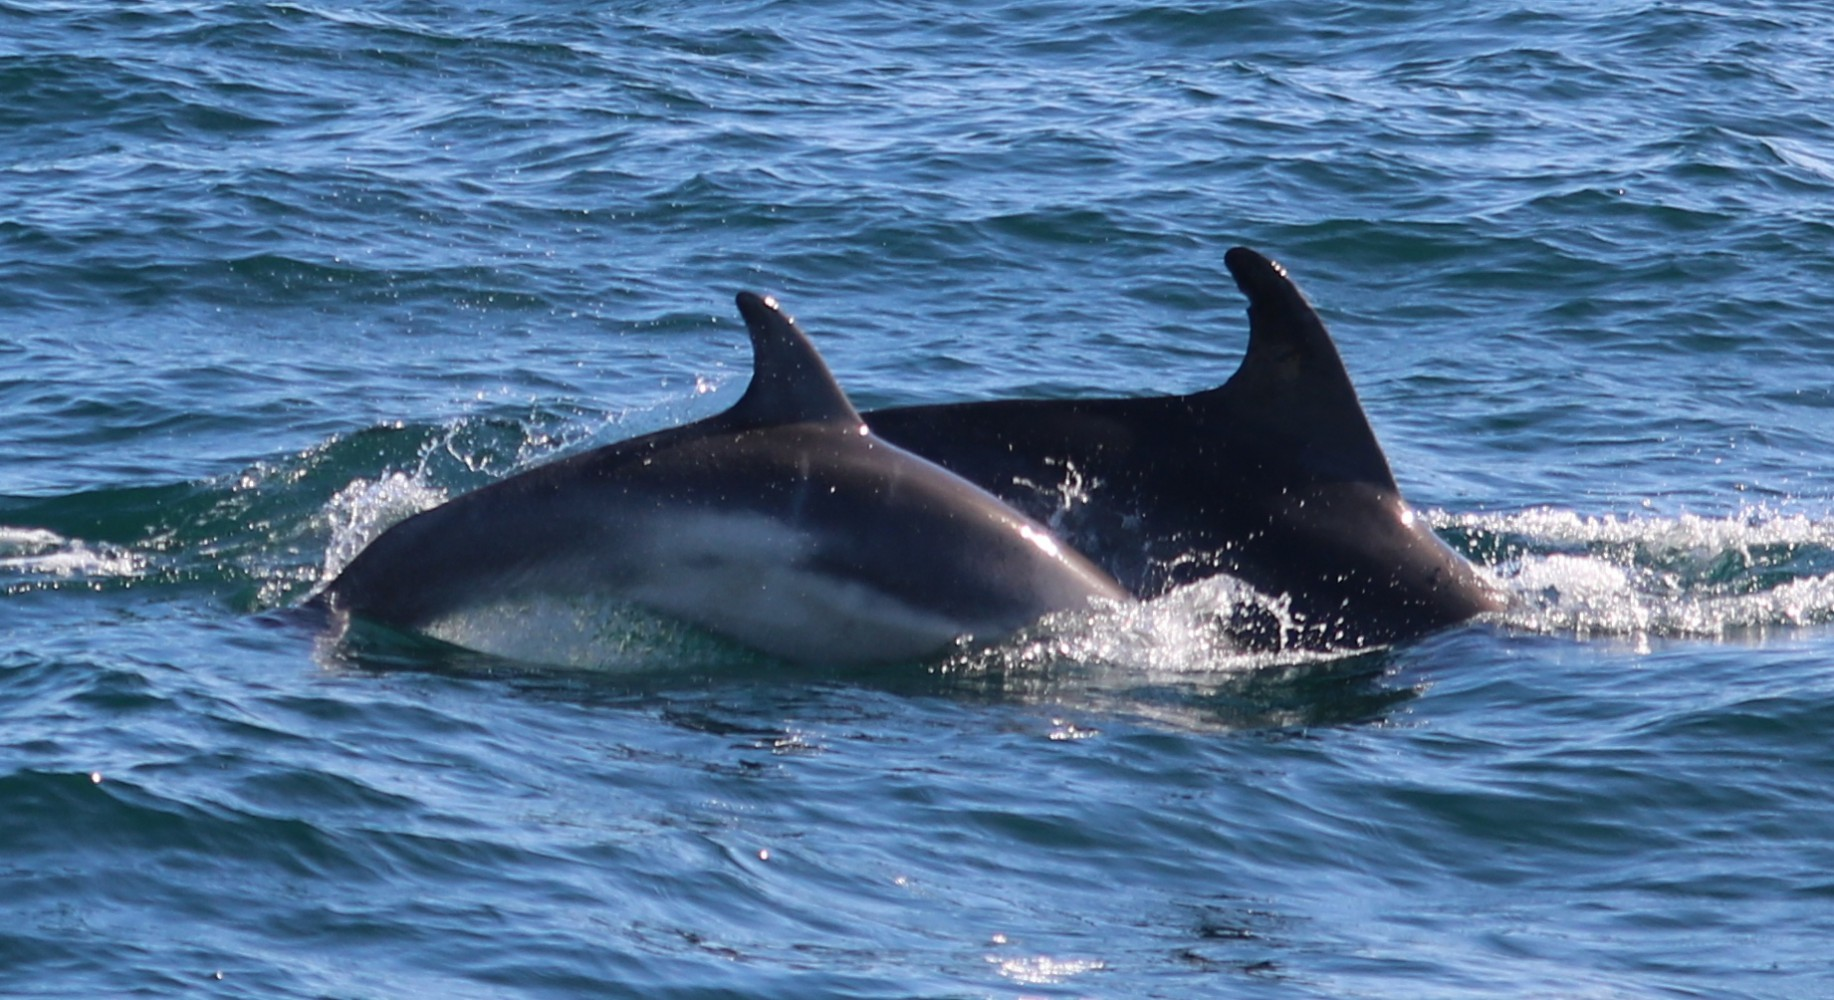 Bottlenose dolphins cow and calf with foetal folds